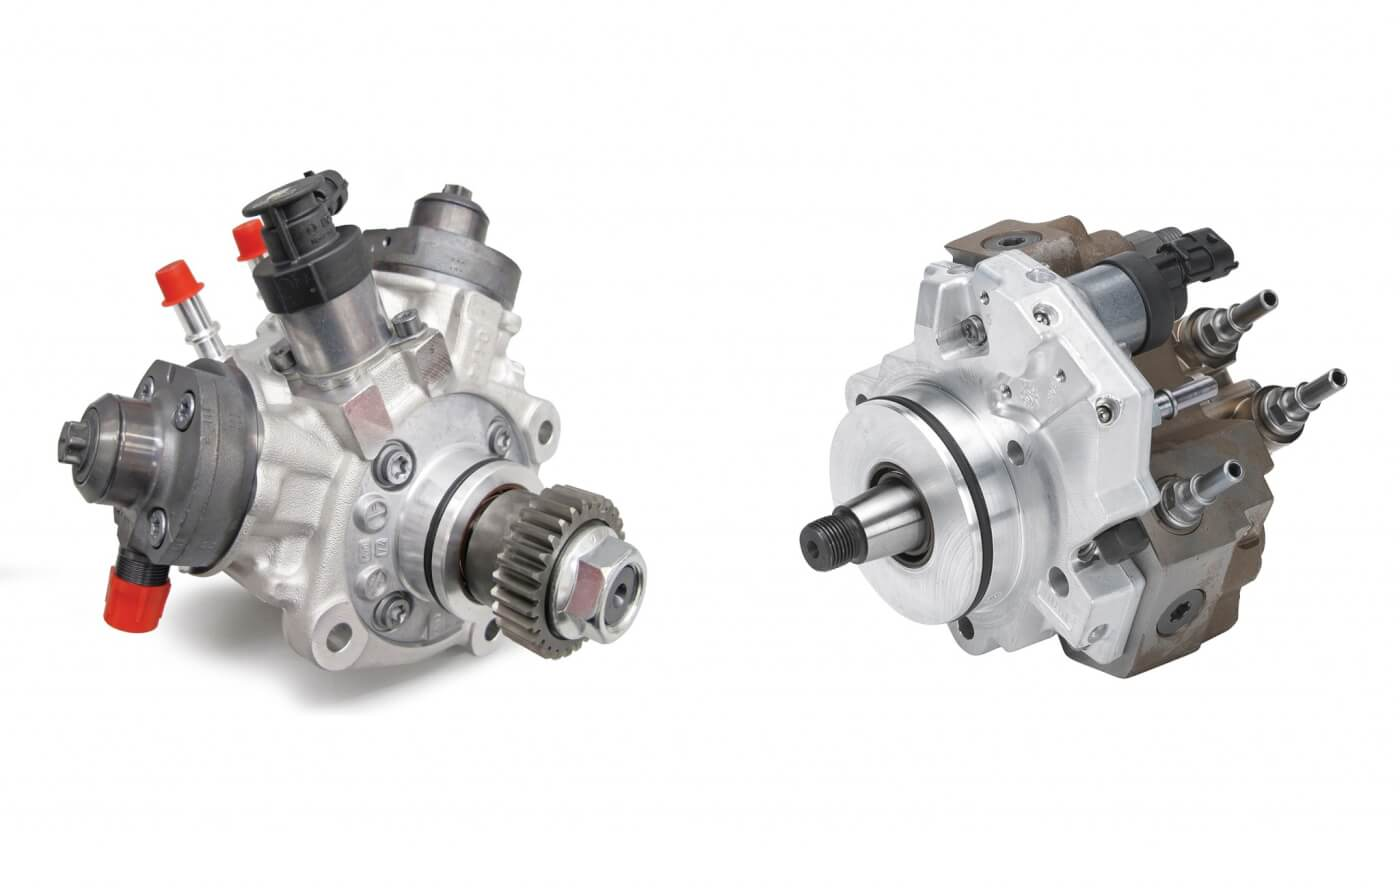 14. In terms of flow, the Exergy 10mm CP3 (right) vastly outperforms the Bosch CP4.2 (left). At a test speed of 3,000 rpm and 180 MPa (26,000 psi) of rail pressure, the 10mm Exergy CP3 flows 54 percent more fuel than the stock CP4.2. And because Exergy's pumps don't fall off after 3,000 rpm like the factory CP4.2 does, the Exergy pump flows an impressive 72 percent more volume at 3,500 rpm.